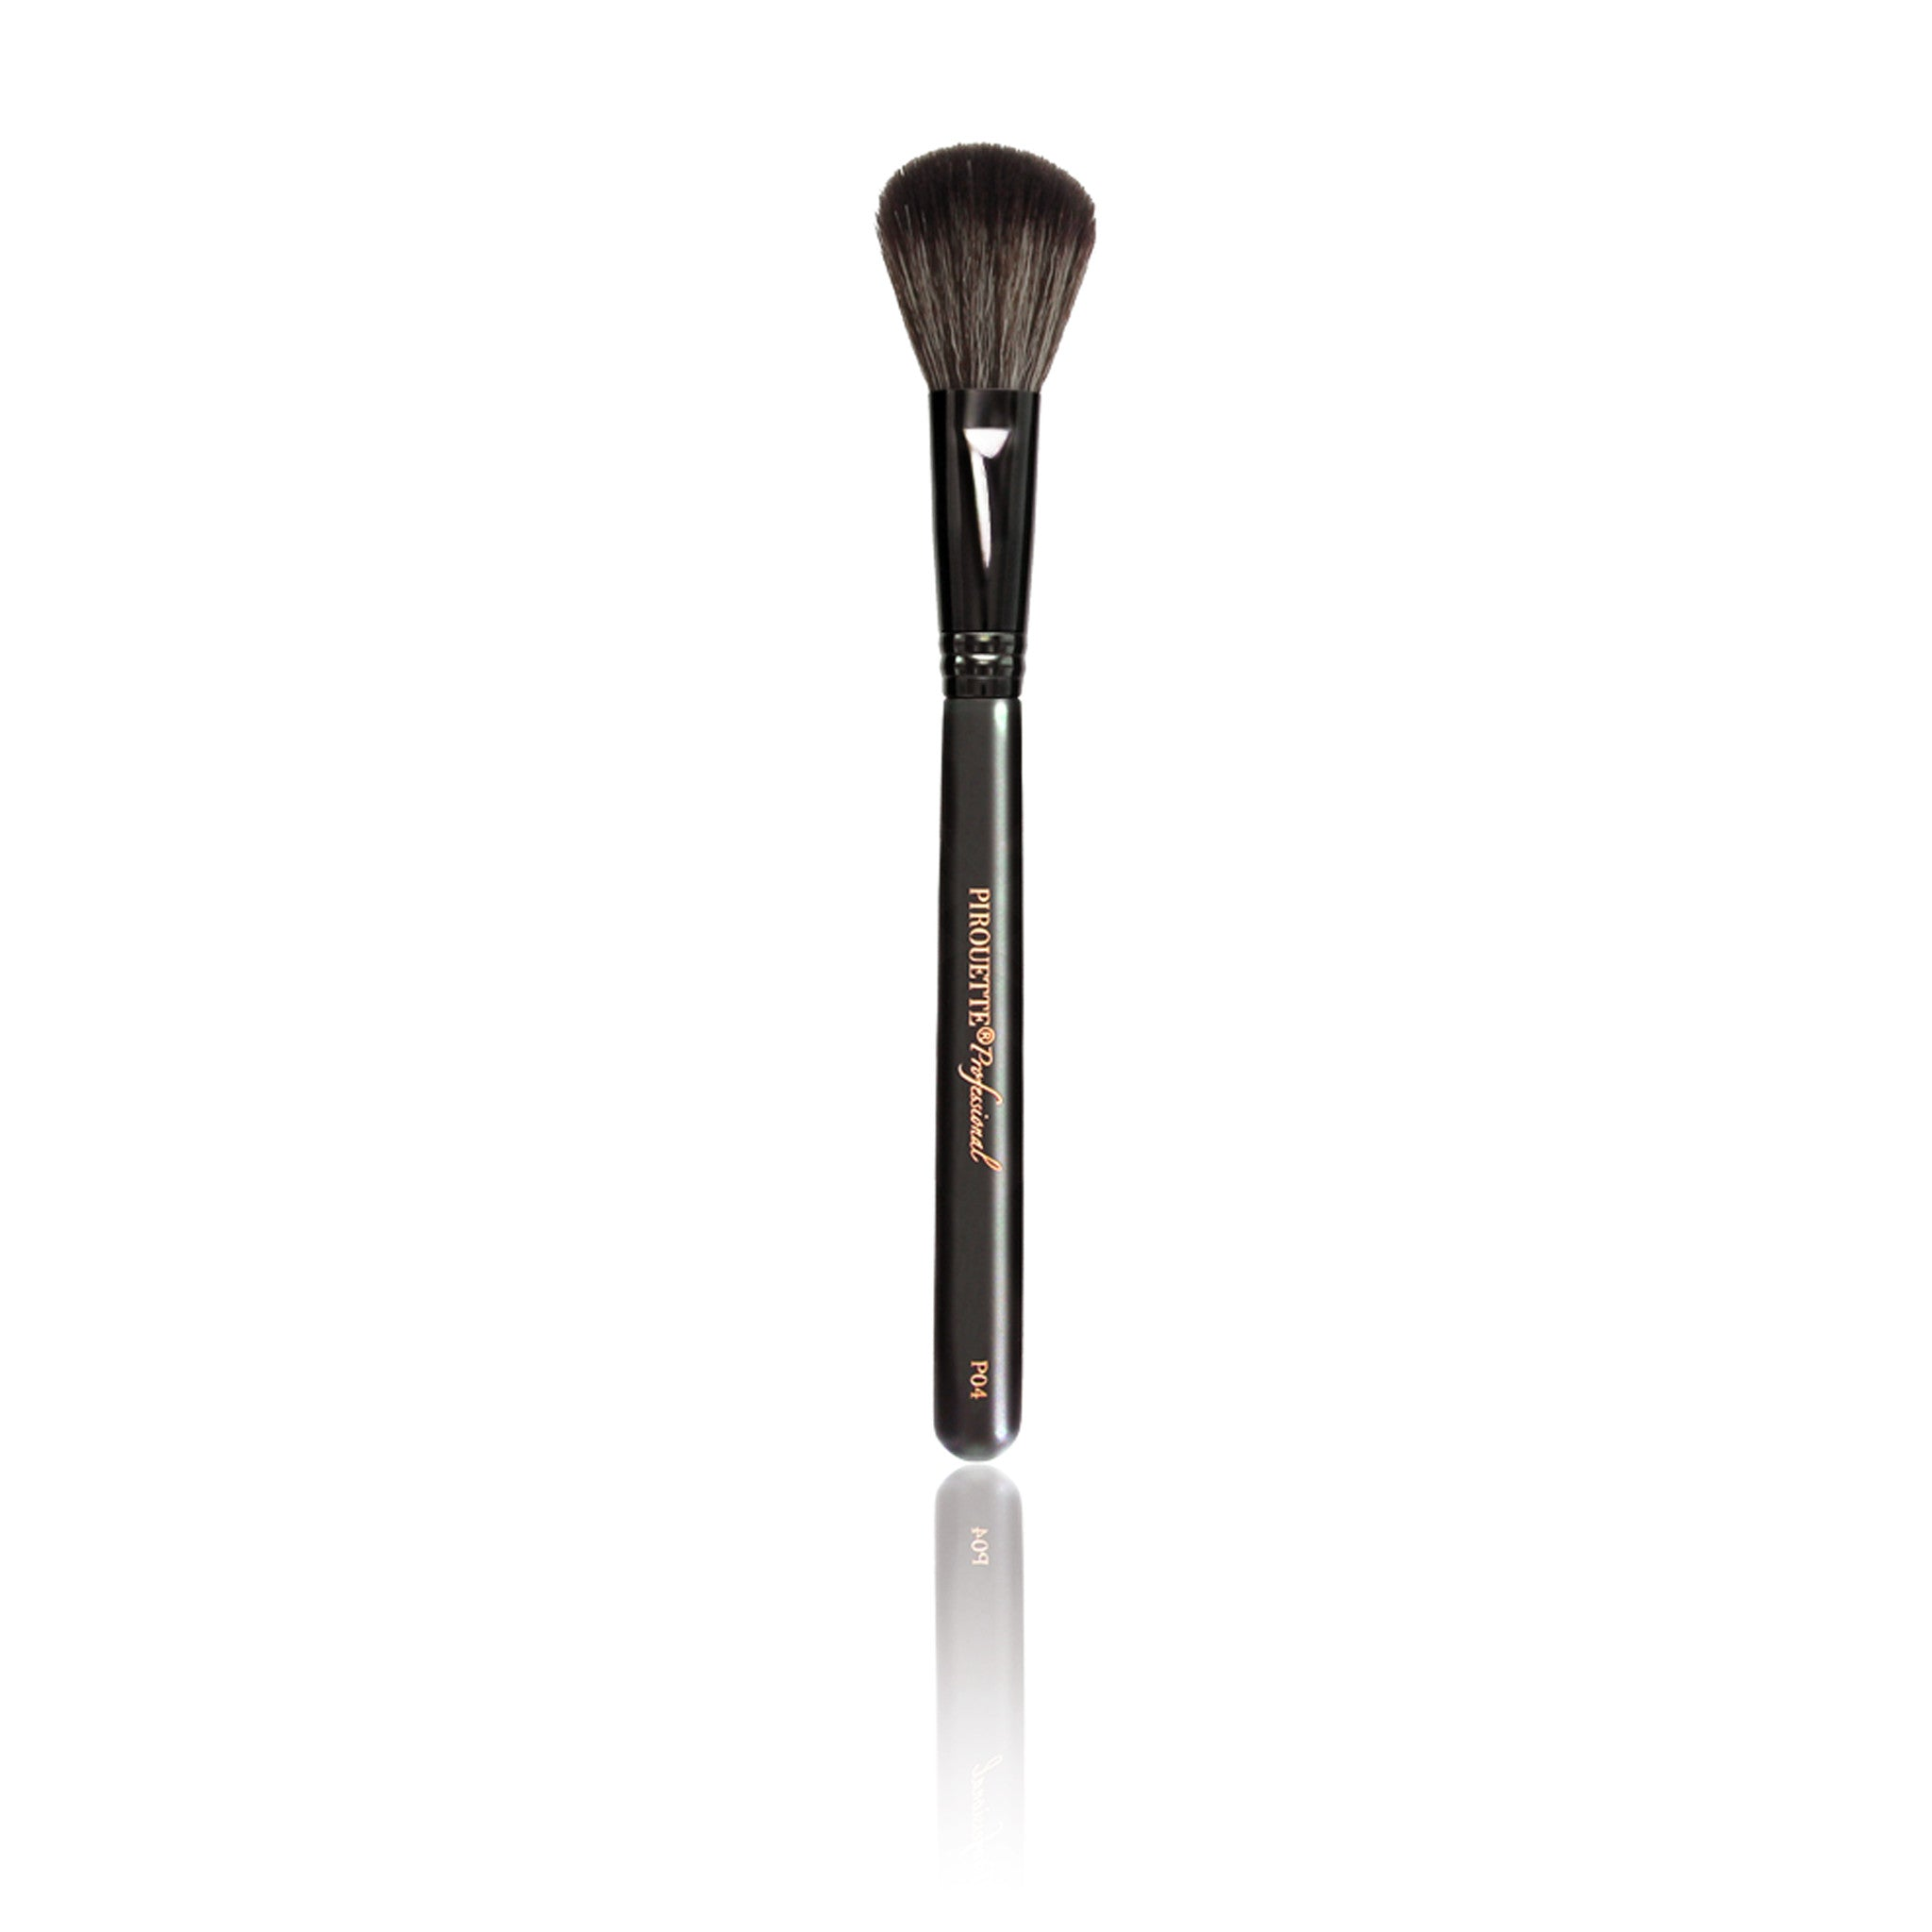 Artiste Collection: Blush Brush P04